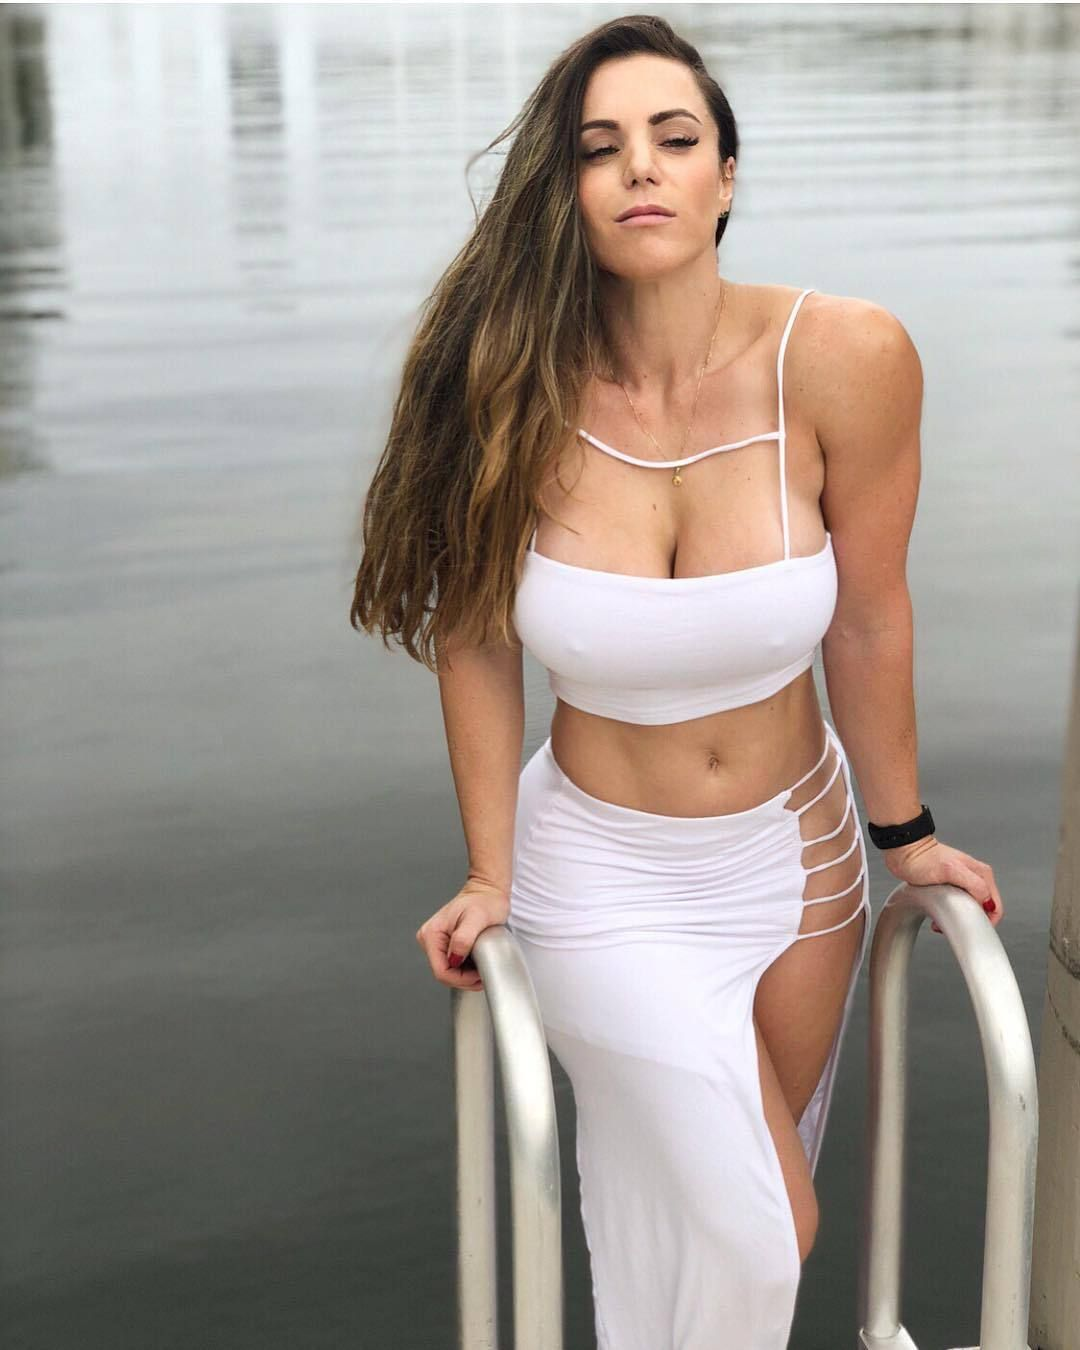 Hot Linda Durbesson naked (11 photos), Topless, Leaked, Feet, underwear 2019